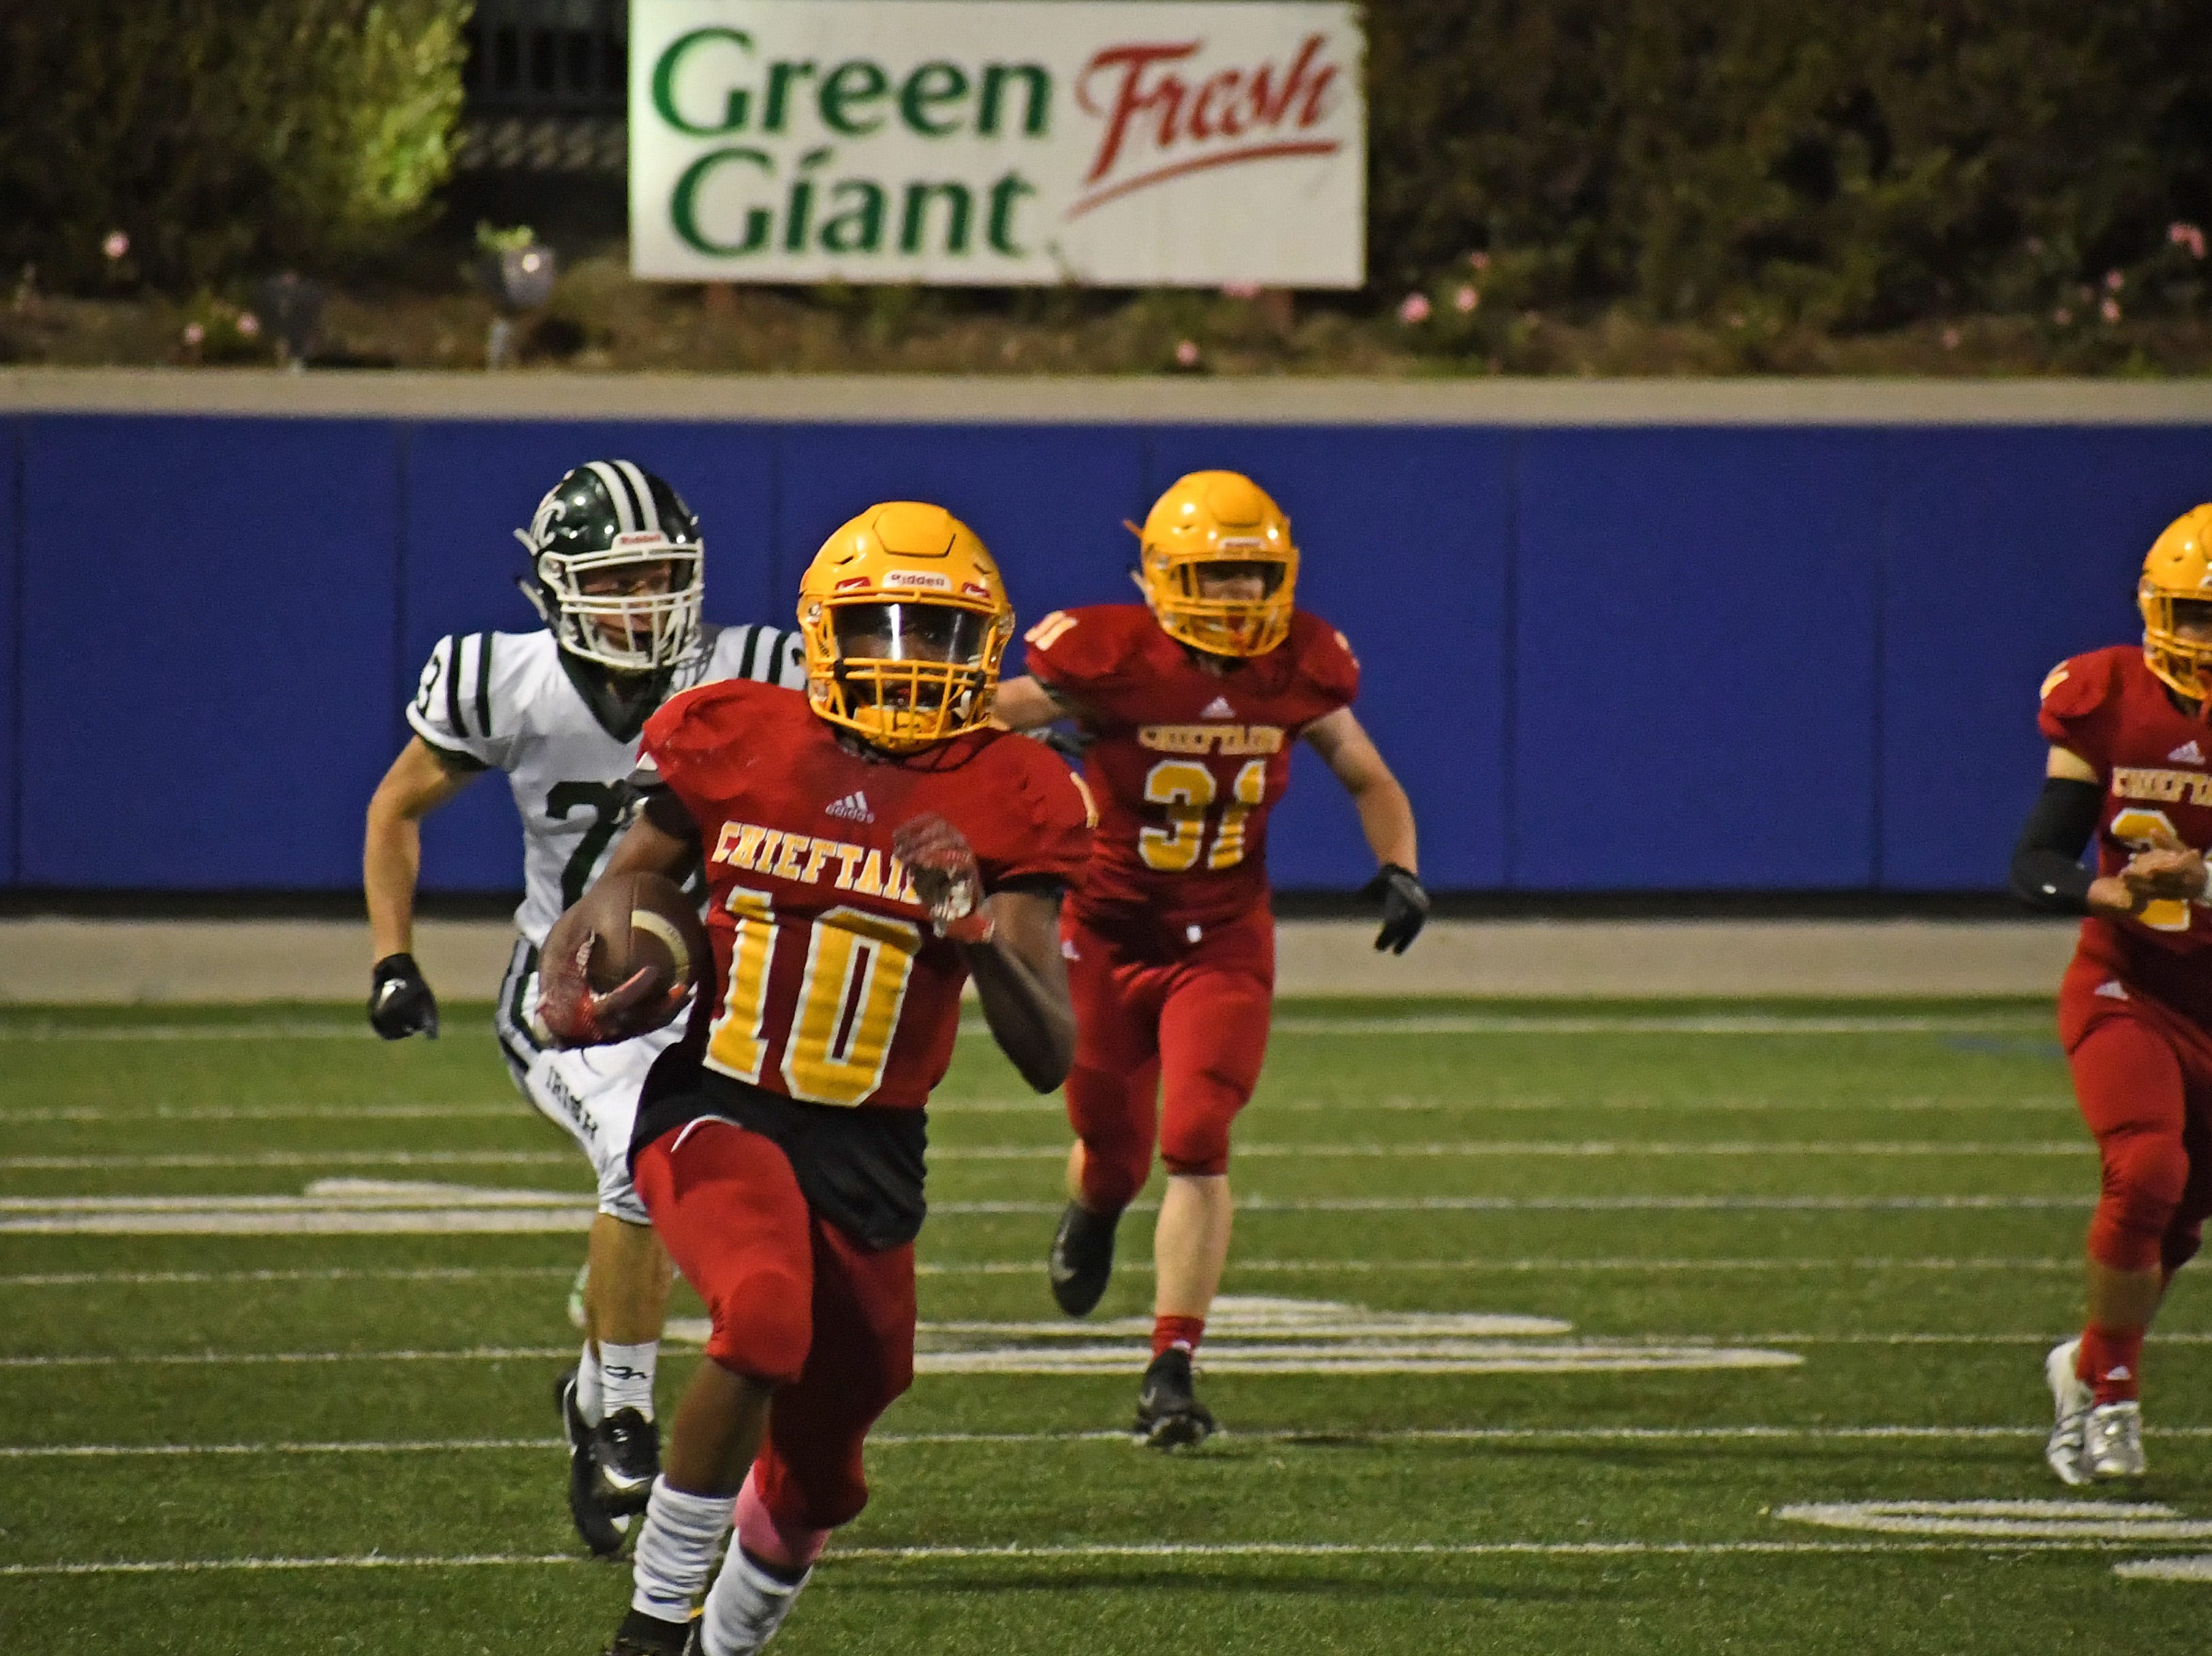 Palma junior Jon Jon Berring (10) takes a kickoff 63 yards to give the Chieftains great field position in the third quarter.